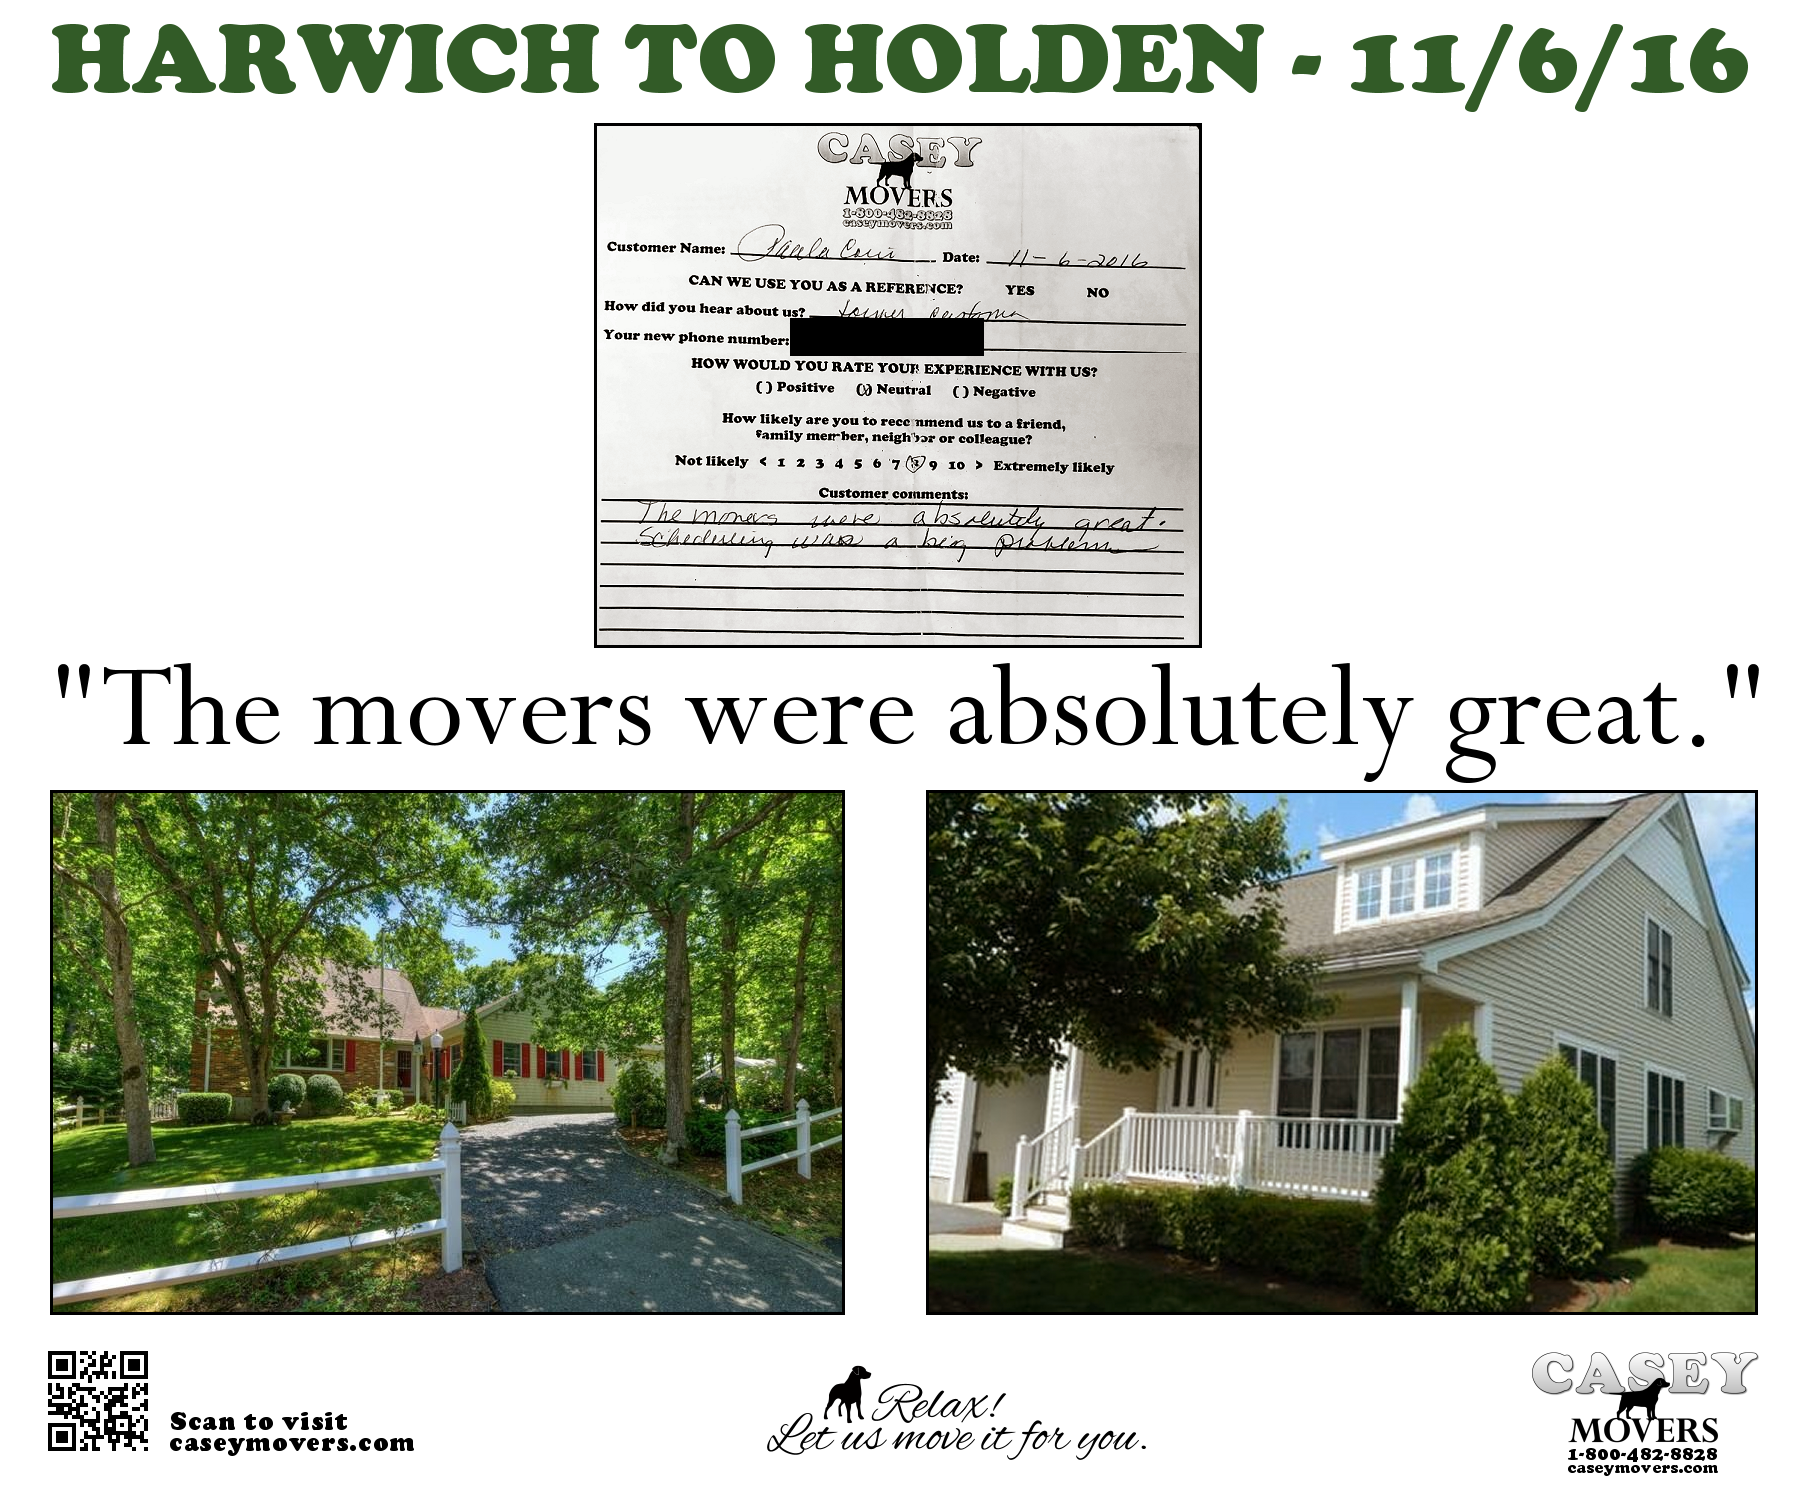 Moving Company Reviews >> Harwich, MA Reviews | Casey Movers